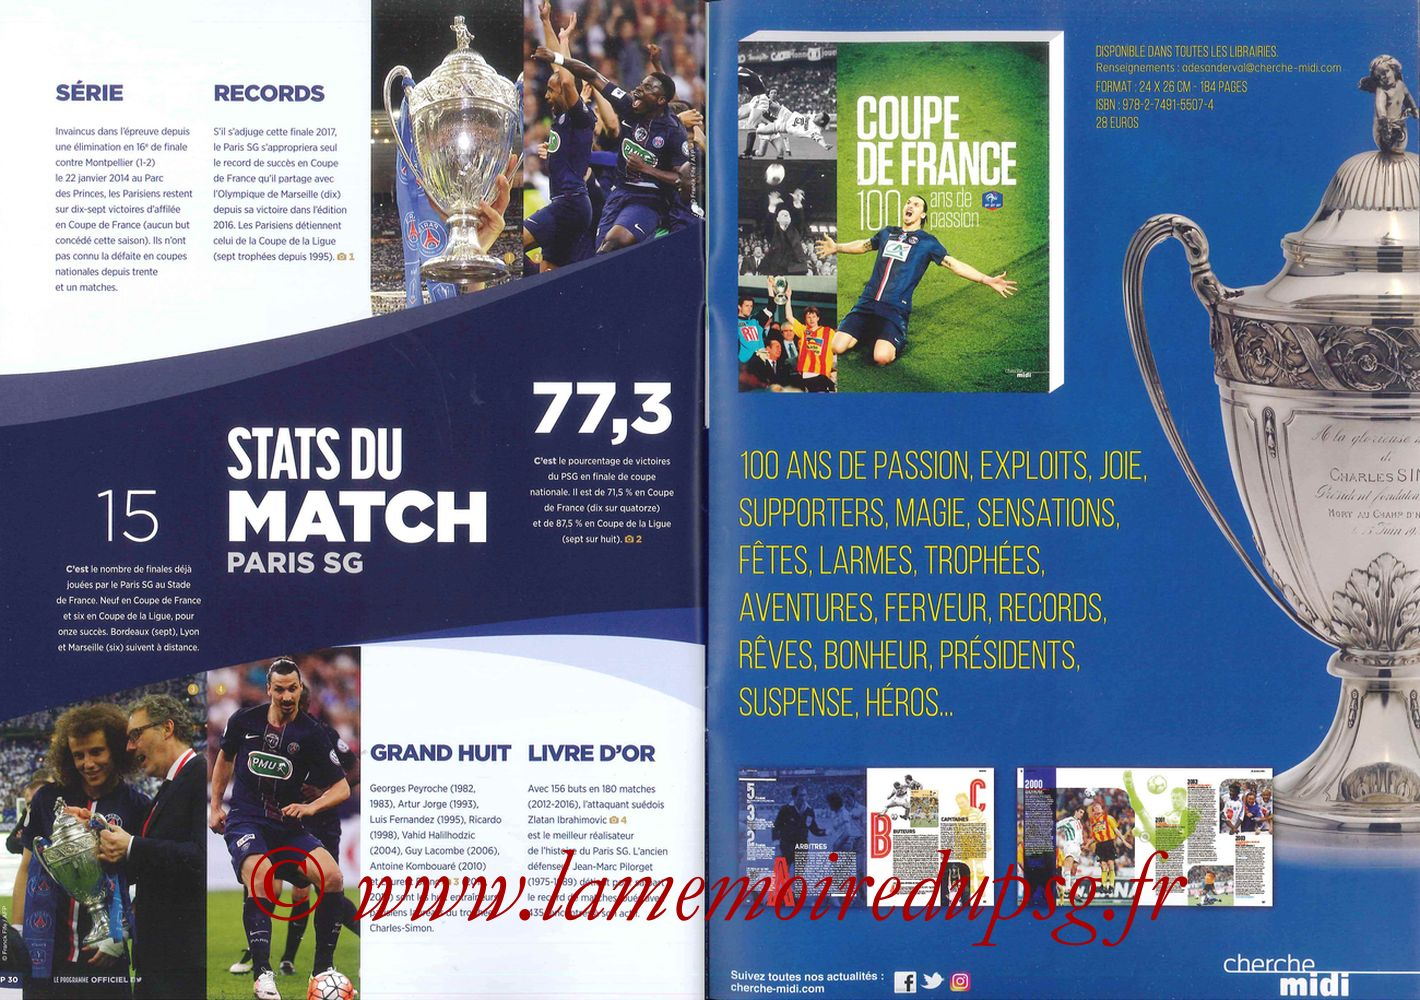 2017-05-27  Angers-PSG (Finale CF à Saint-Denis, Programme officiel) - Pages 30 et 31